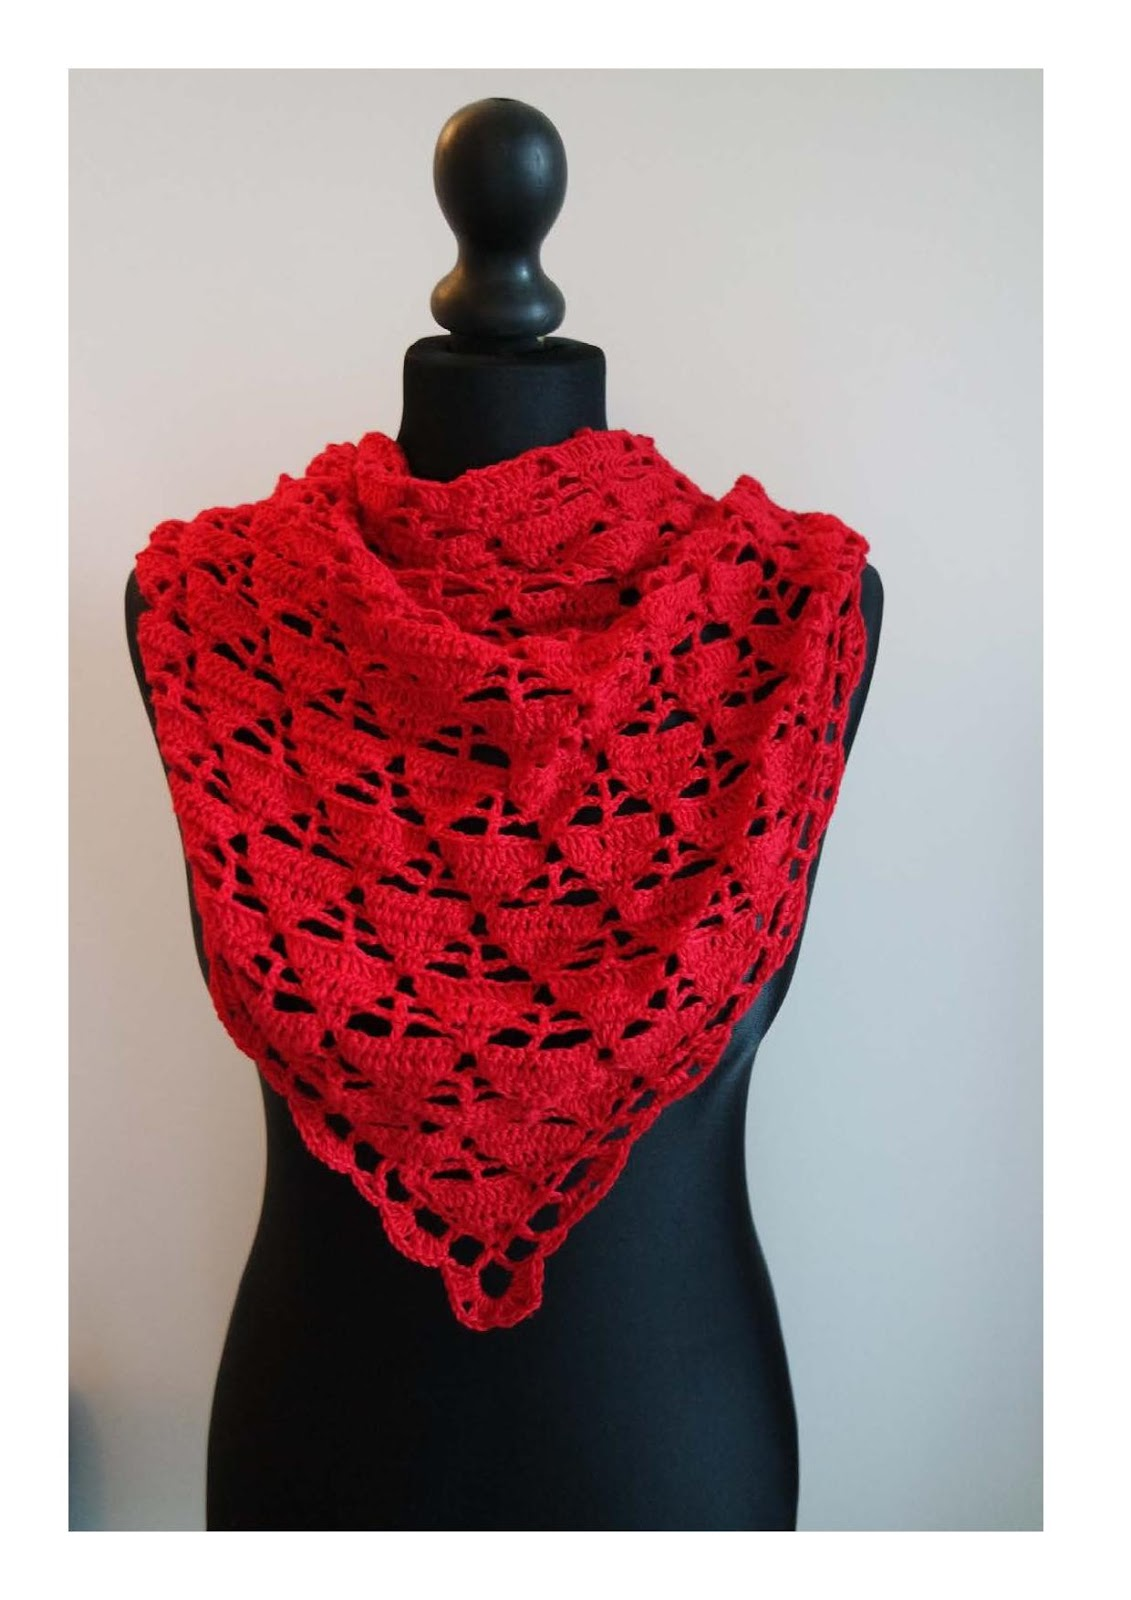 Free crochet patterns and video tutorials: How to crochet